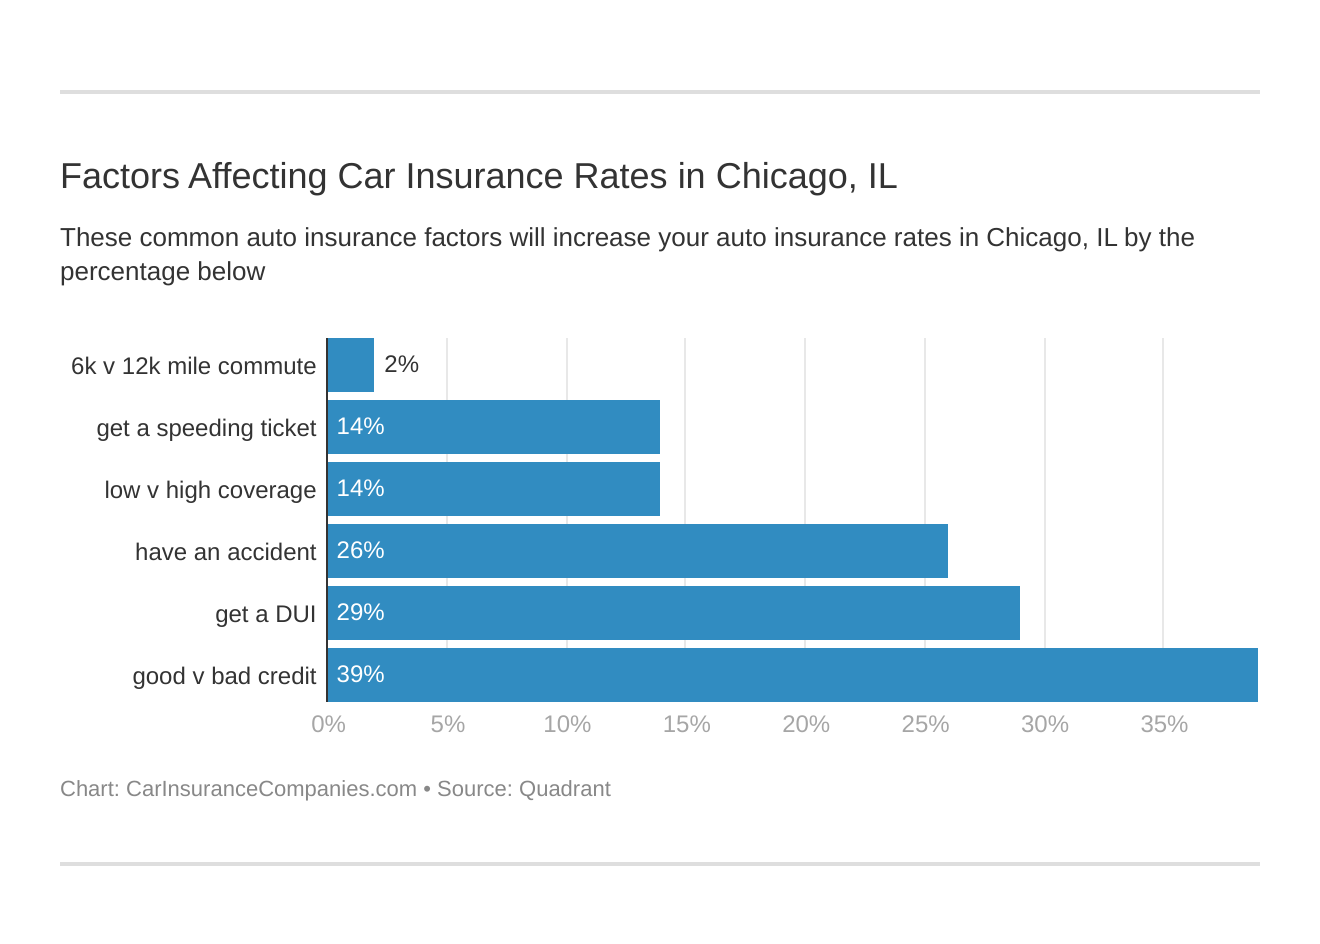 Factors Affecting Car Insurance Rates in Chicago, IL